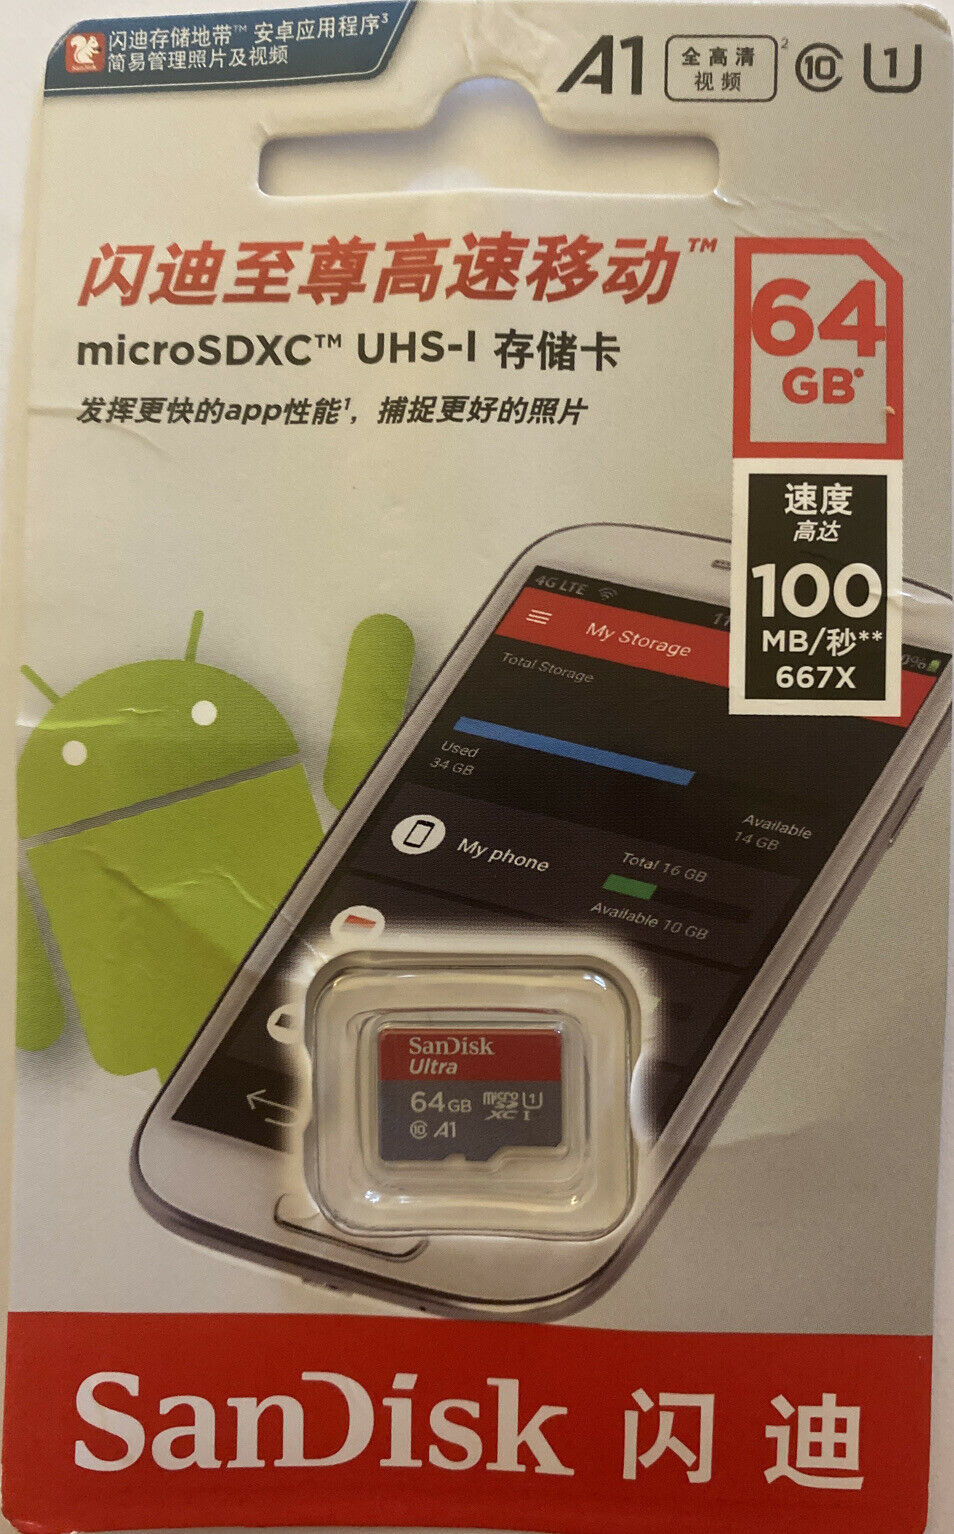 100MBs A1 U1 C10 Works with SanDisk SanDisk Ultra 200GB MicroSDXC Verified for ZTE Axon 7 by SanFlash